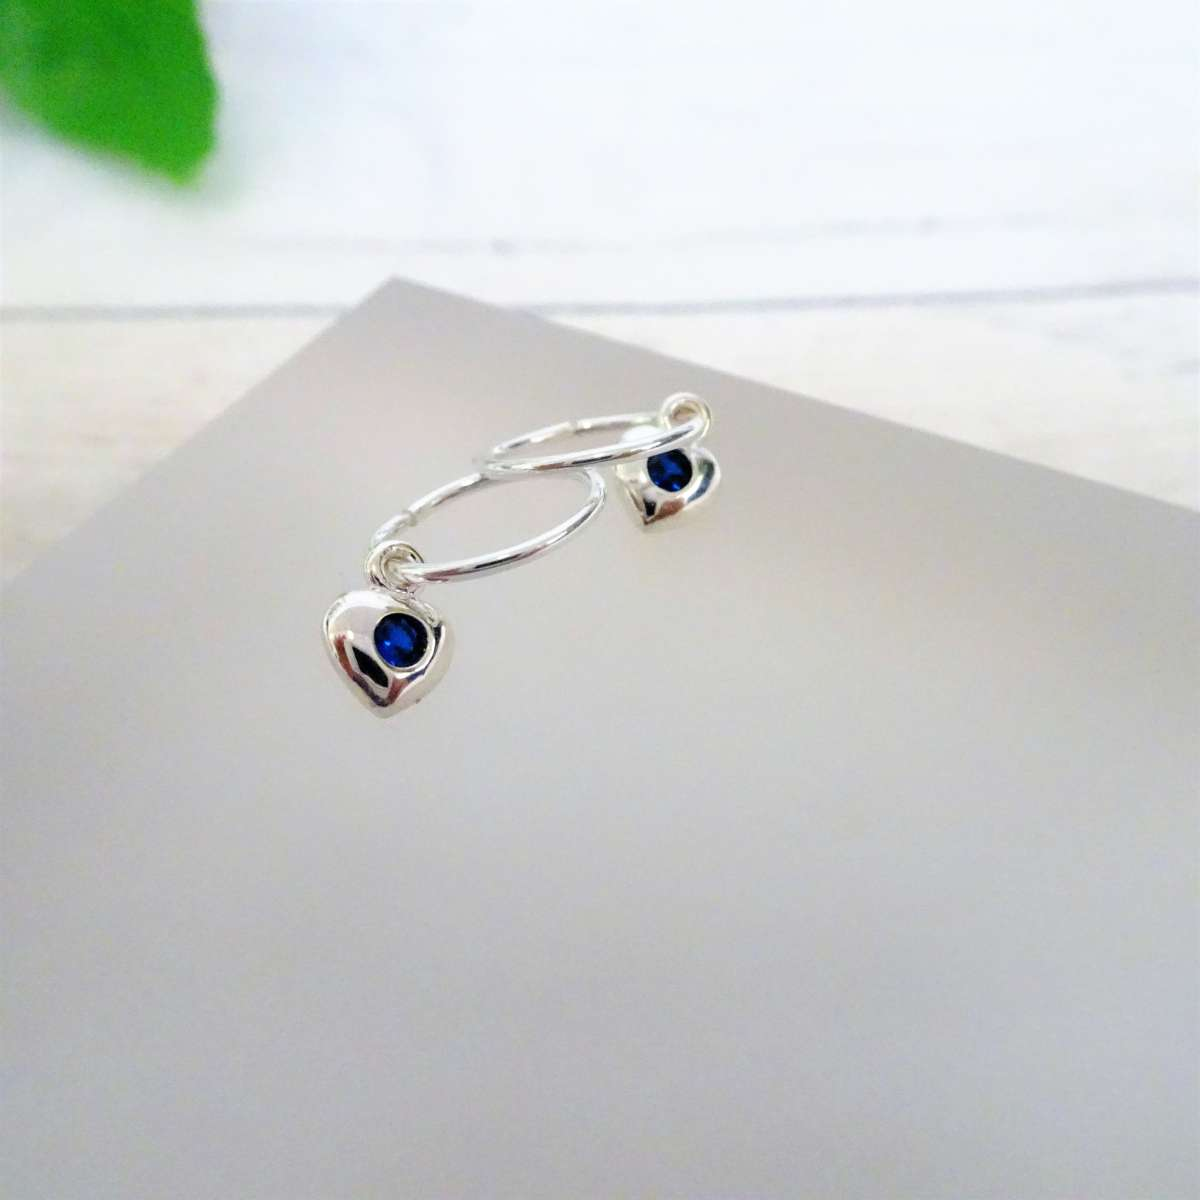 Alterative image for Sterling Silver CZ Crystal Birthstone Heart 10 - 22mm Sleeper Hoop Earrings